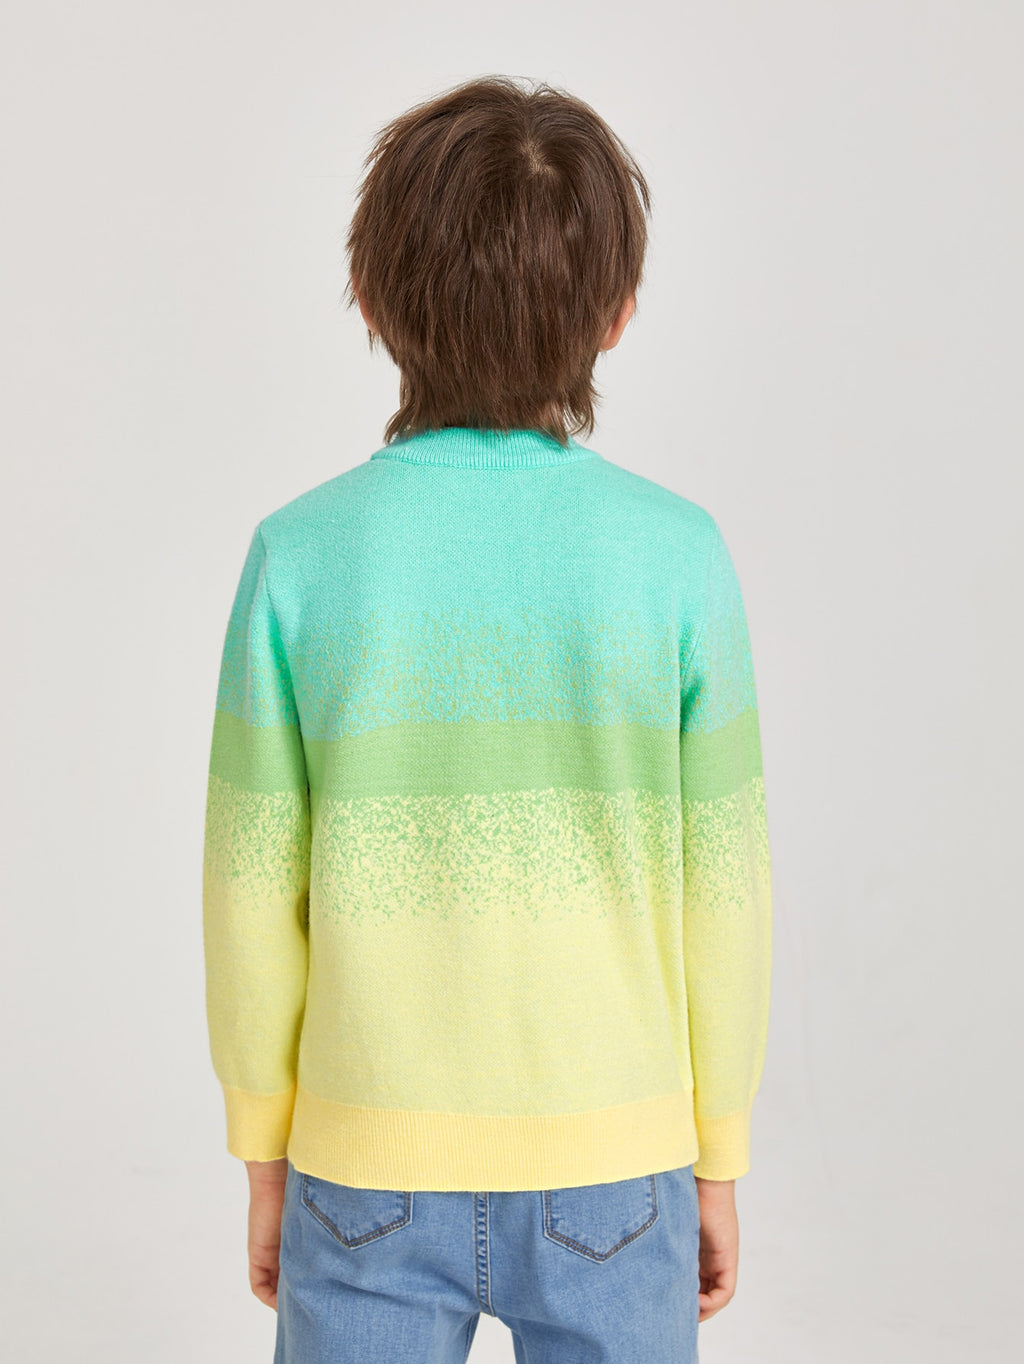 Boys Mock Neck Colorblock Sweater